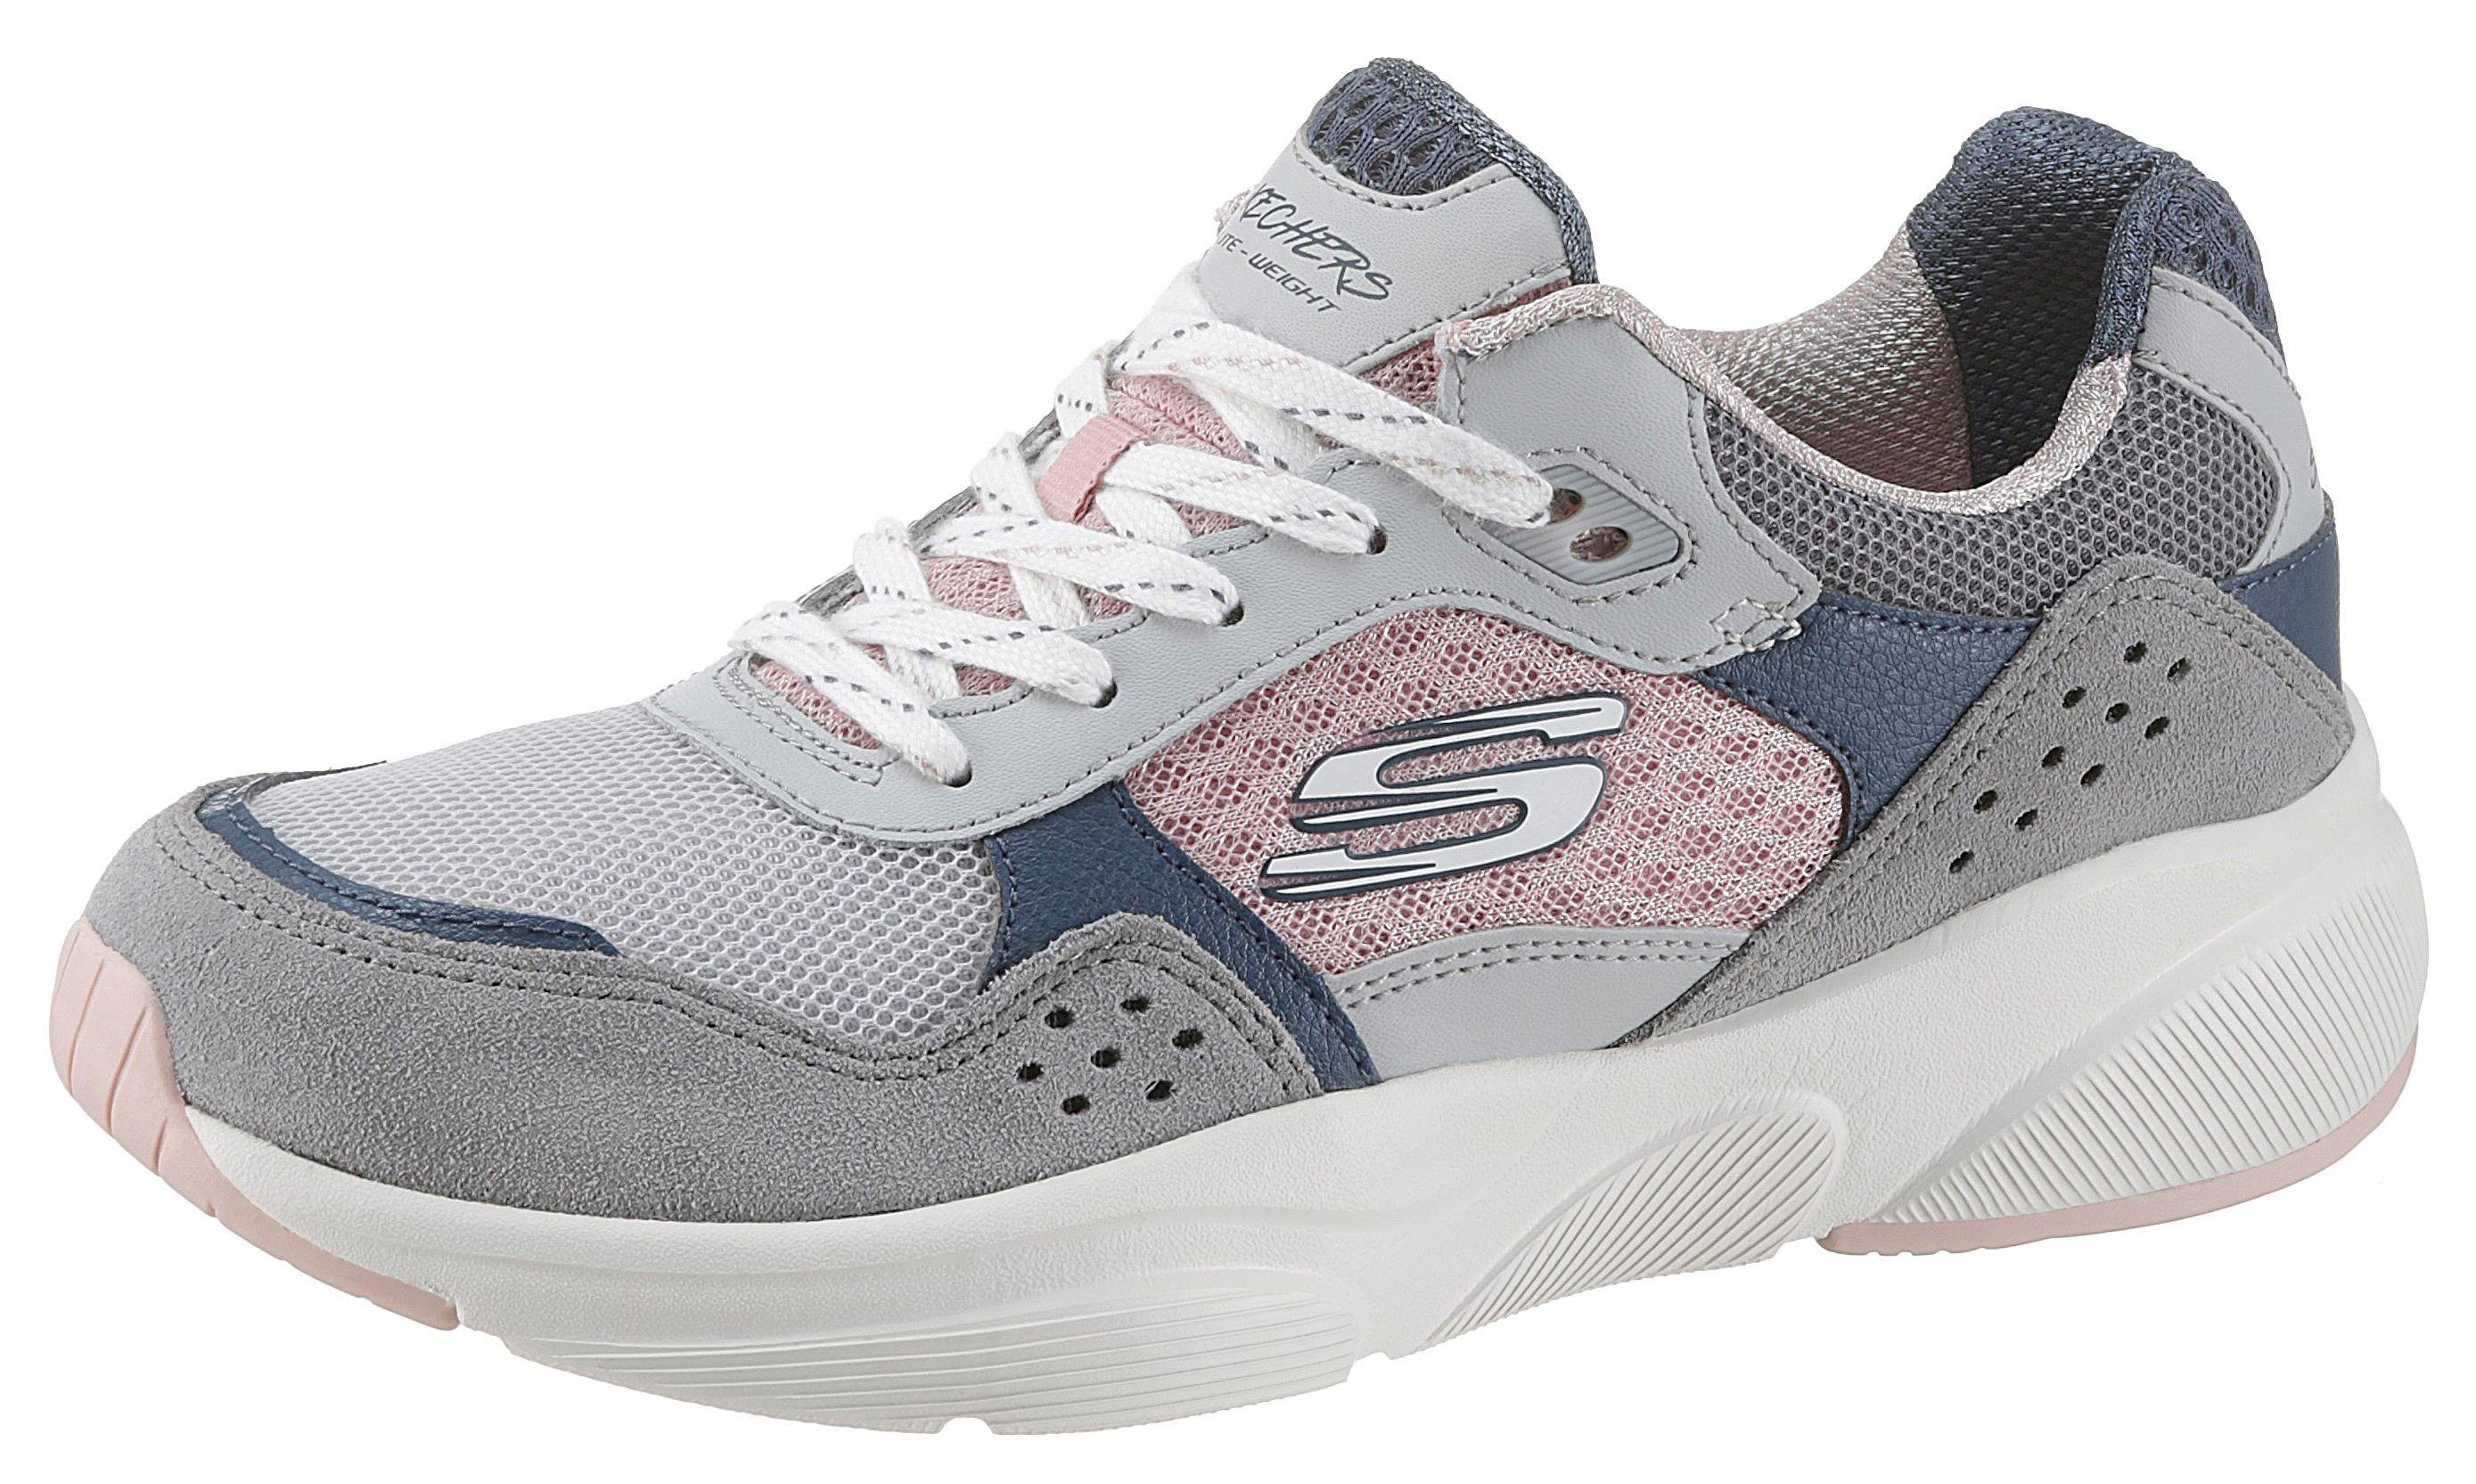 Skechers »Meridian Charted« Sneaker mit Air Cooled Memory Foam online kaufen | OTTO